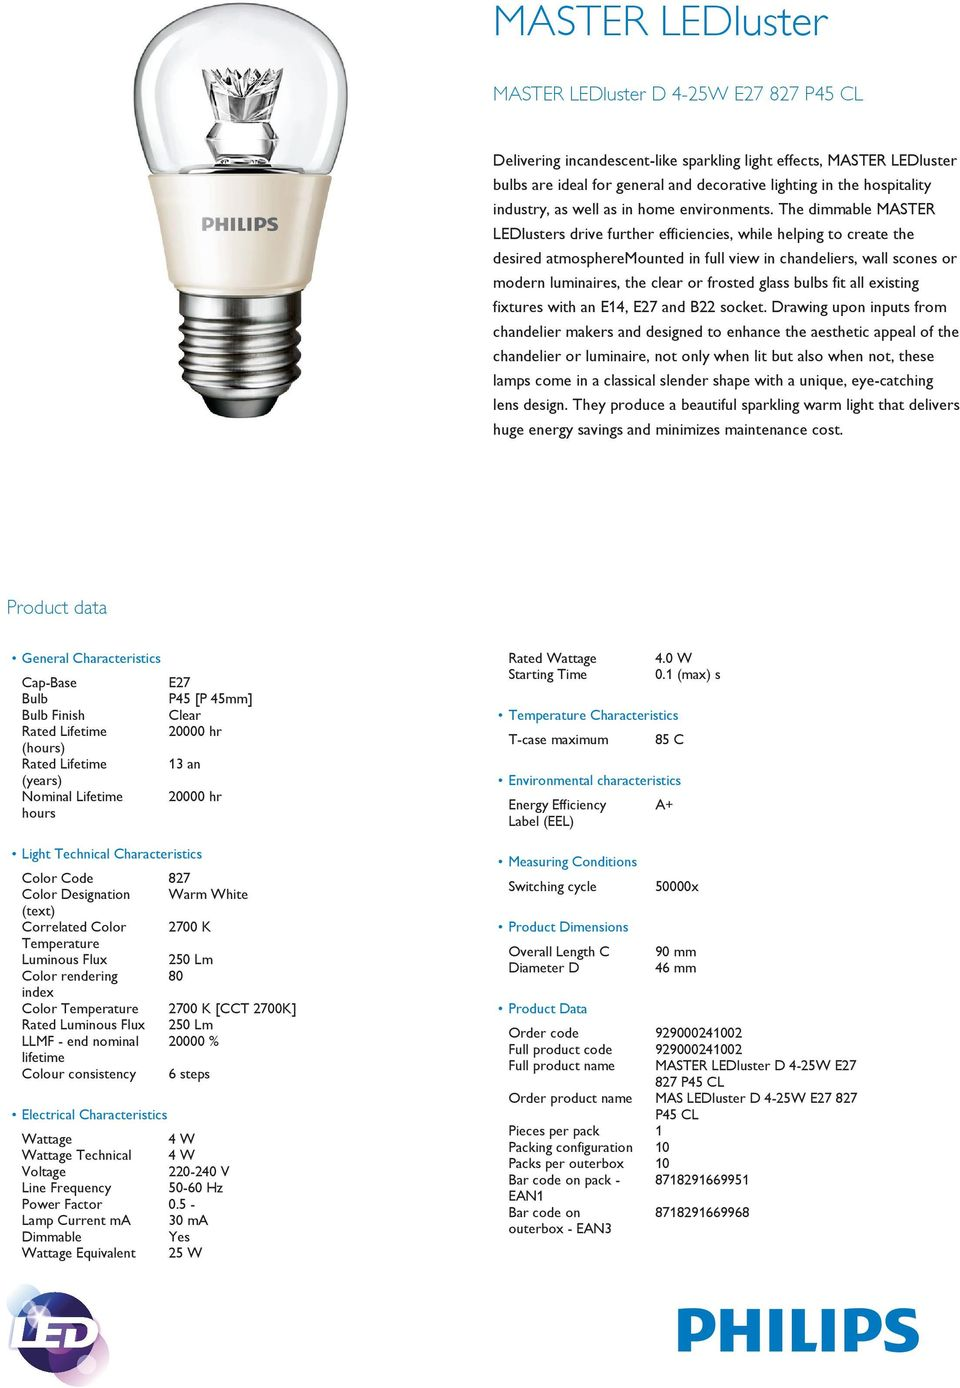 The dimmable MASTER LEDlusters drive further efficiencies, while helping to create the desired atmospheremounted in full view in chandeliers, wall scones or modern luminaires, the clear or frosted